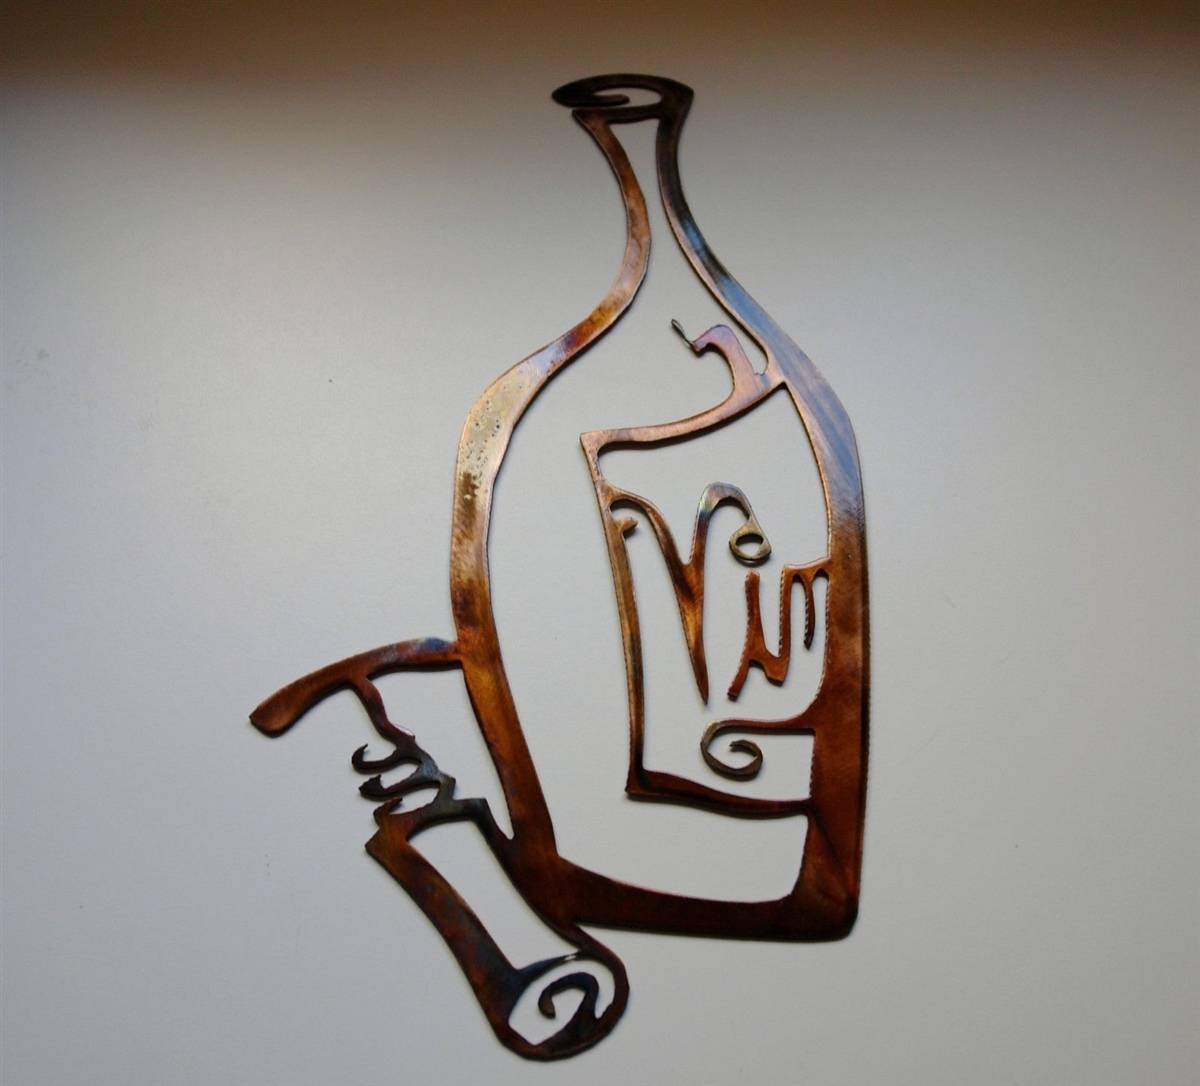 Vino! Metal Wall Art Decor, Wine Bottle And Opener Copper & Bronze Throughout 2018 Wine Metal Wall Art (View 9 of 20)